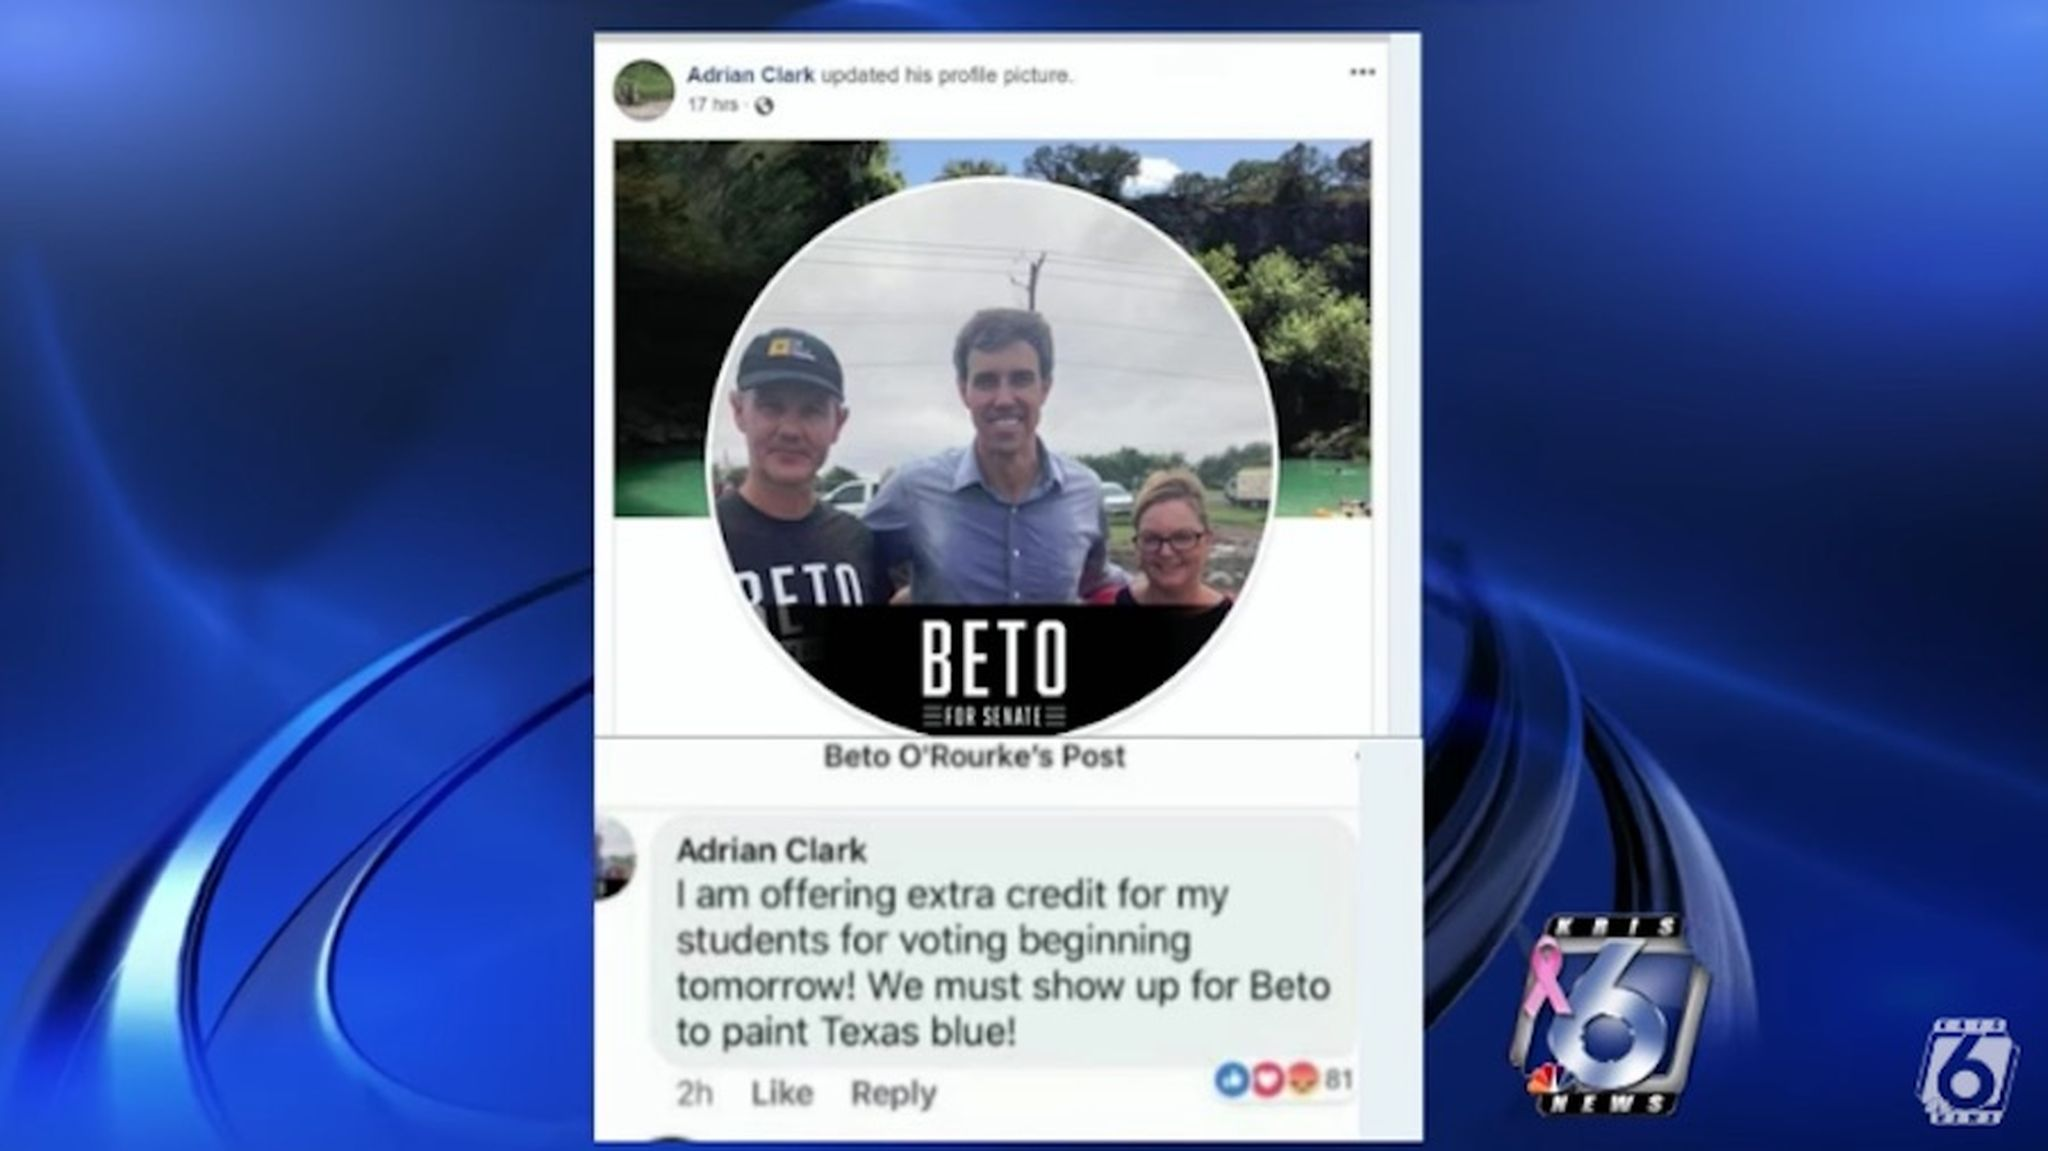 Texas College Professor Being Investigated For Offering Extra Credit to Vote for Beto O'Rourke